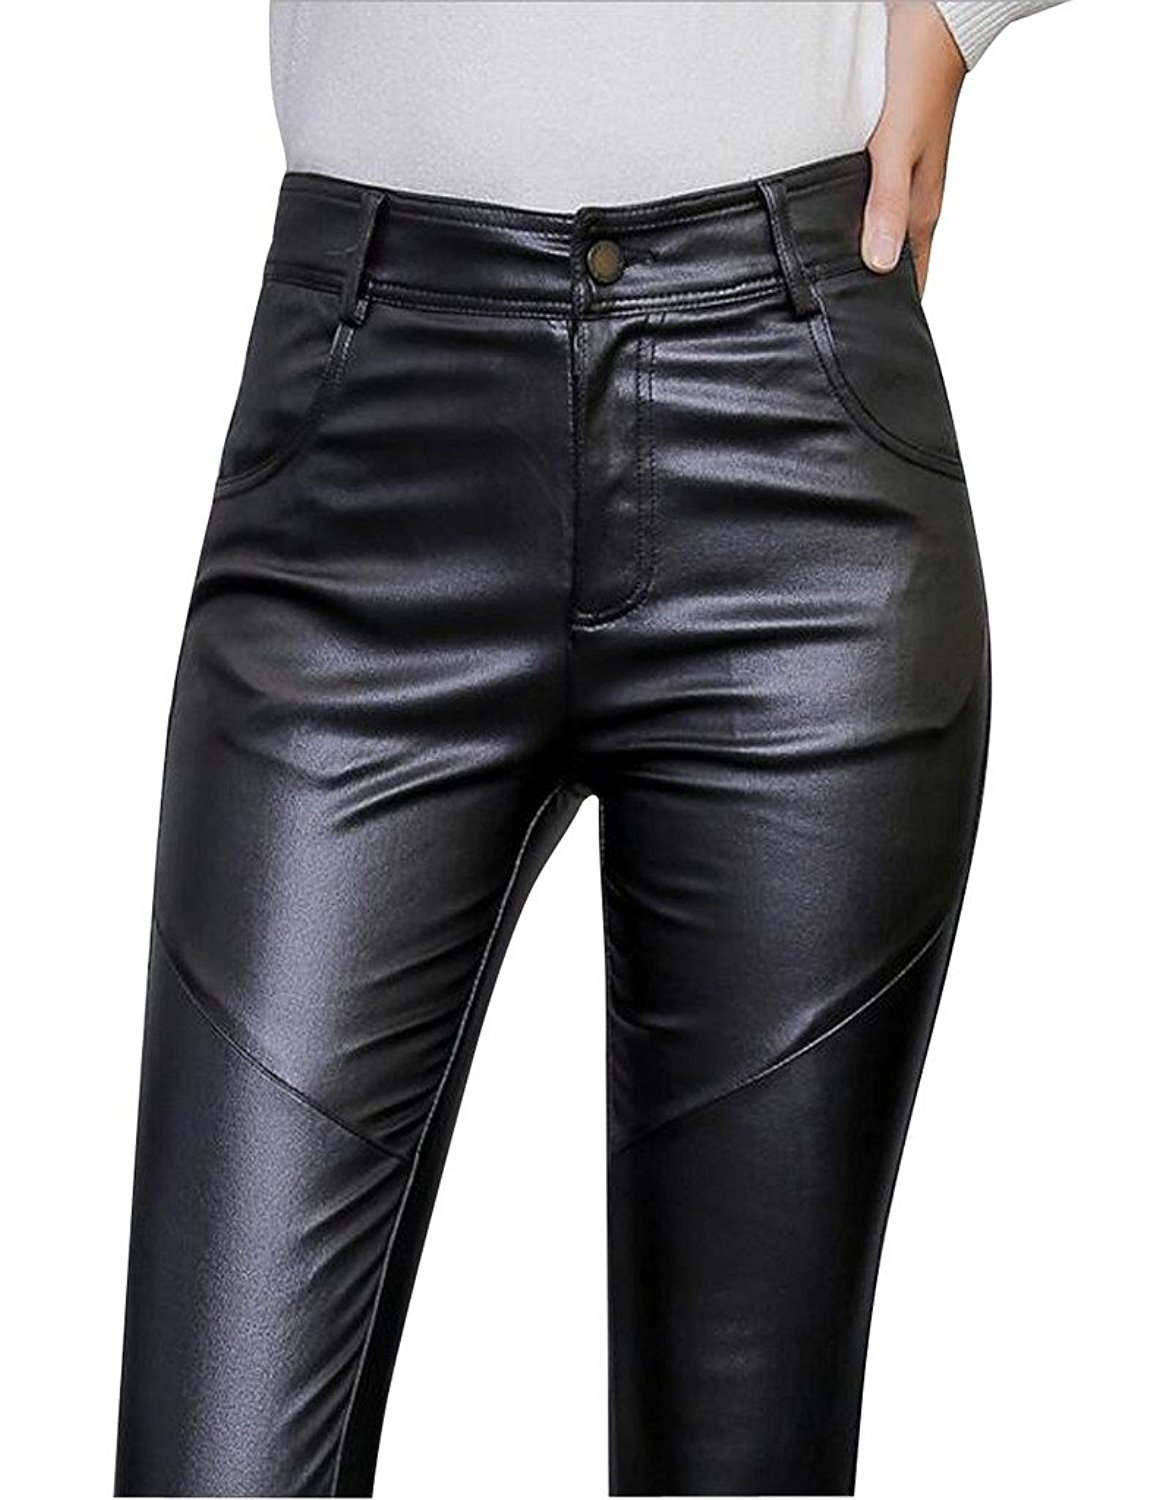 DPO Women's Sexy Mid Waist Faux Leather Button Leggings Skinny Pant at Amazon Women's Clothing store: